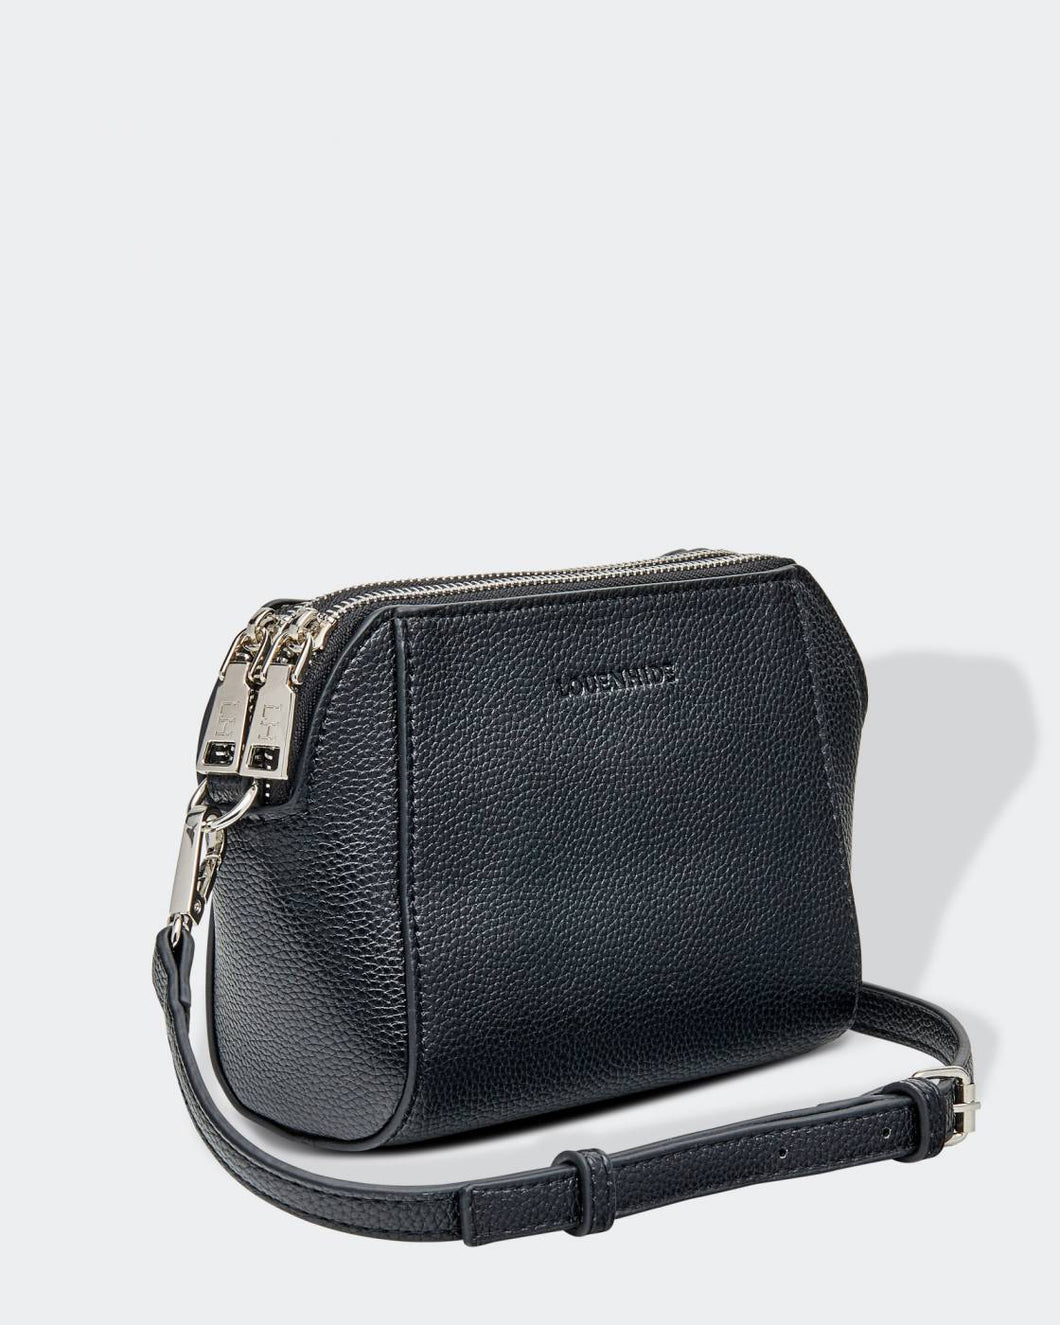 LOUENHIDE ERIKA CROSSBODY BAG - BLACK